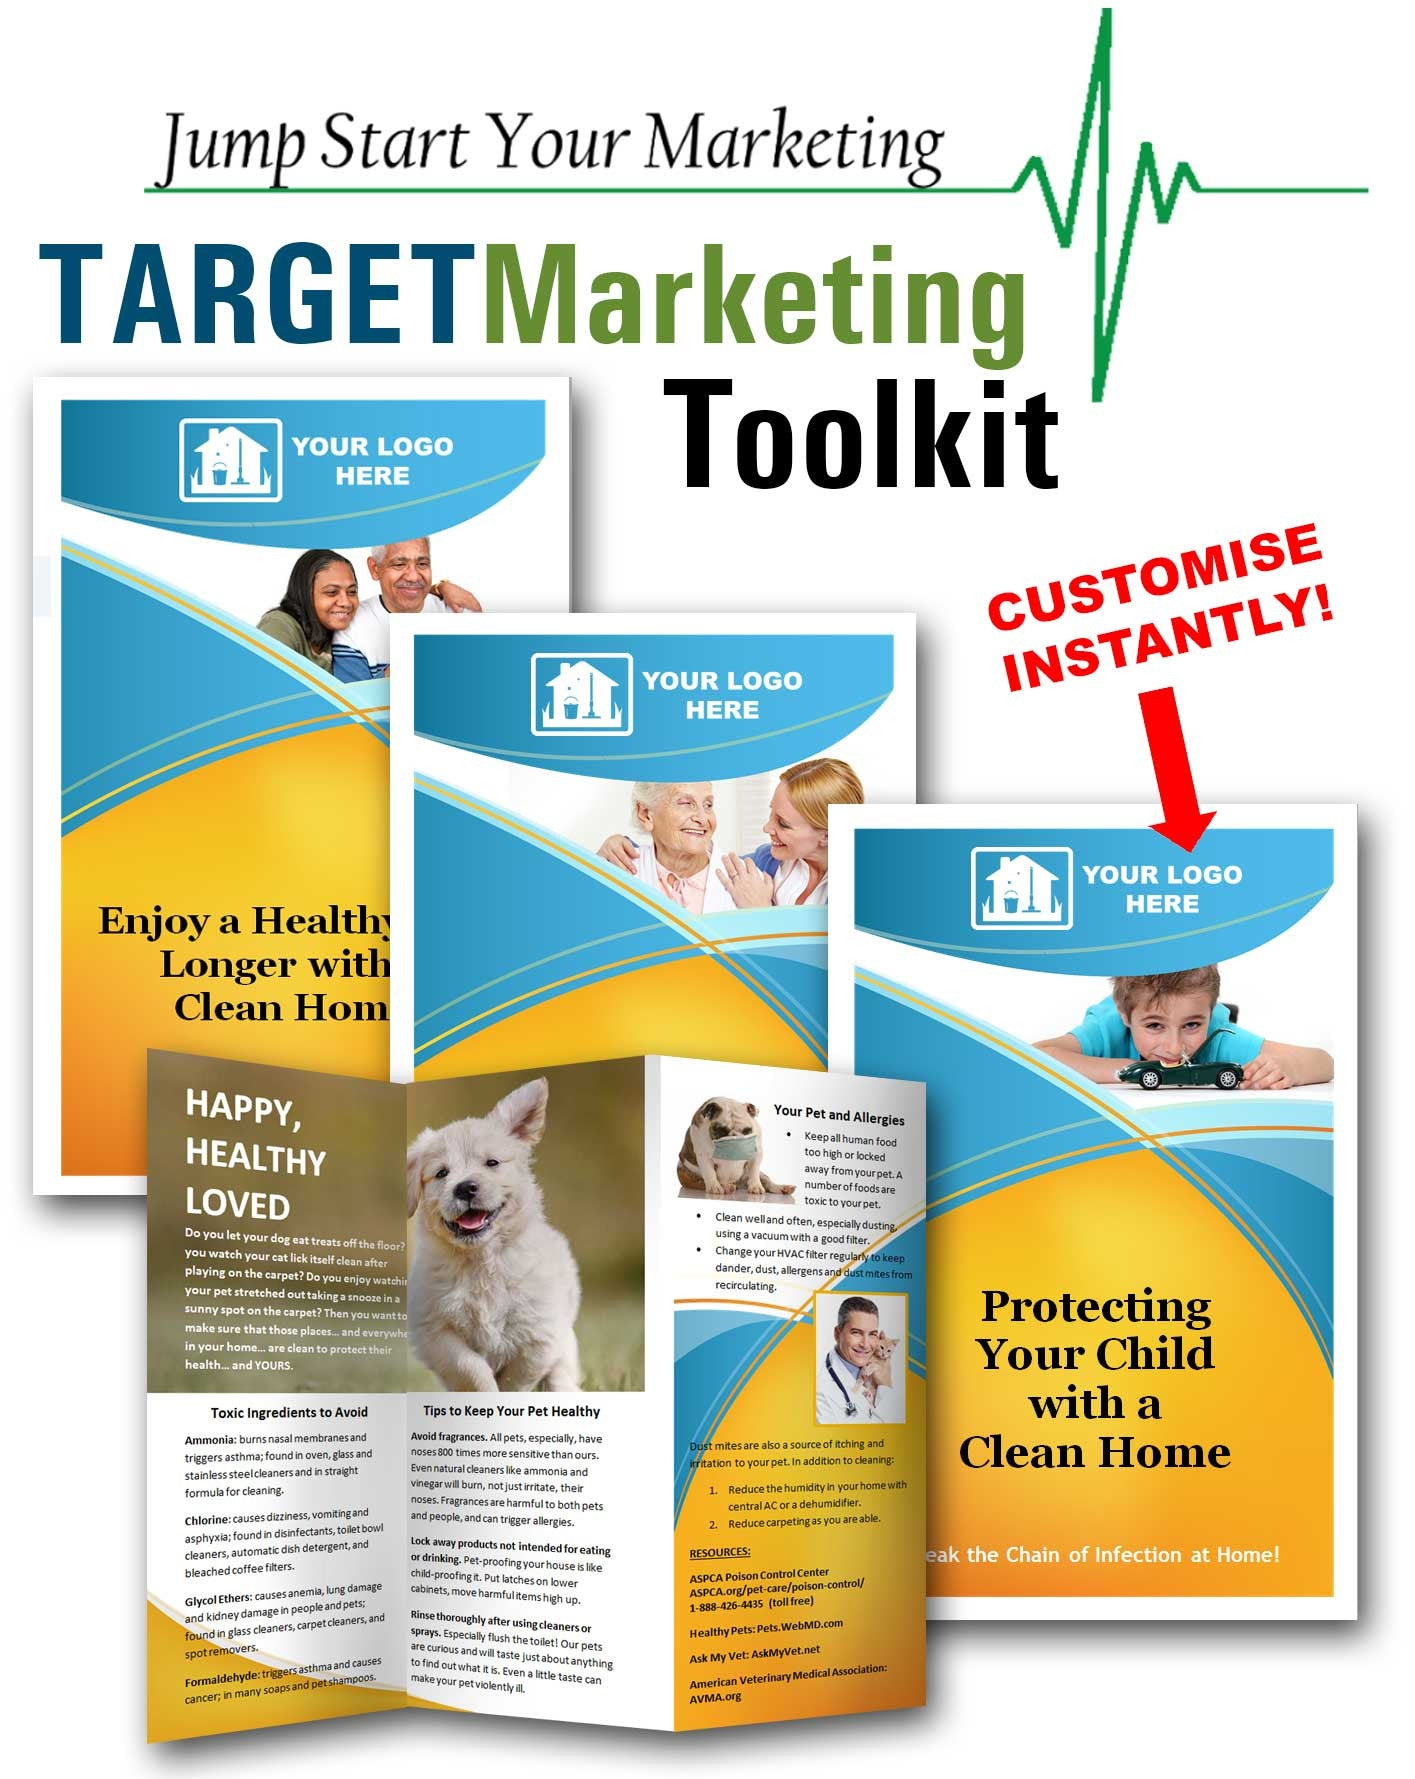 Target Marketing Toolkit for Market Growth